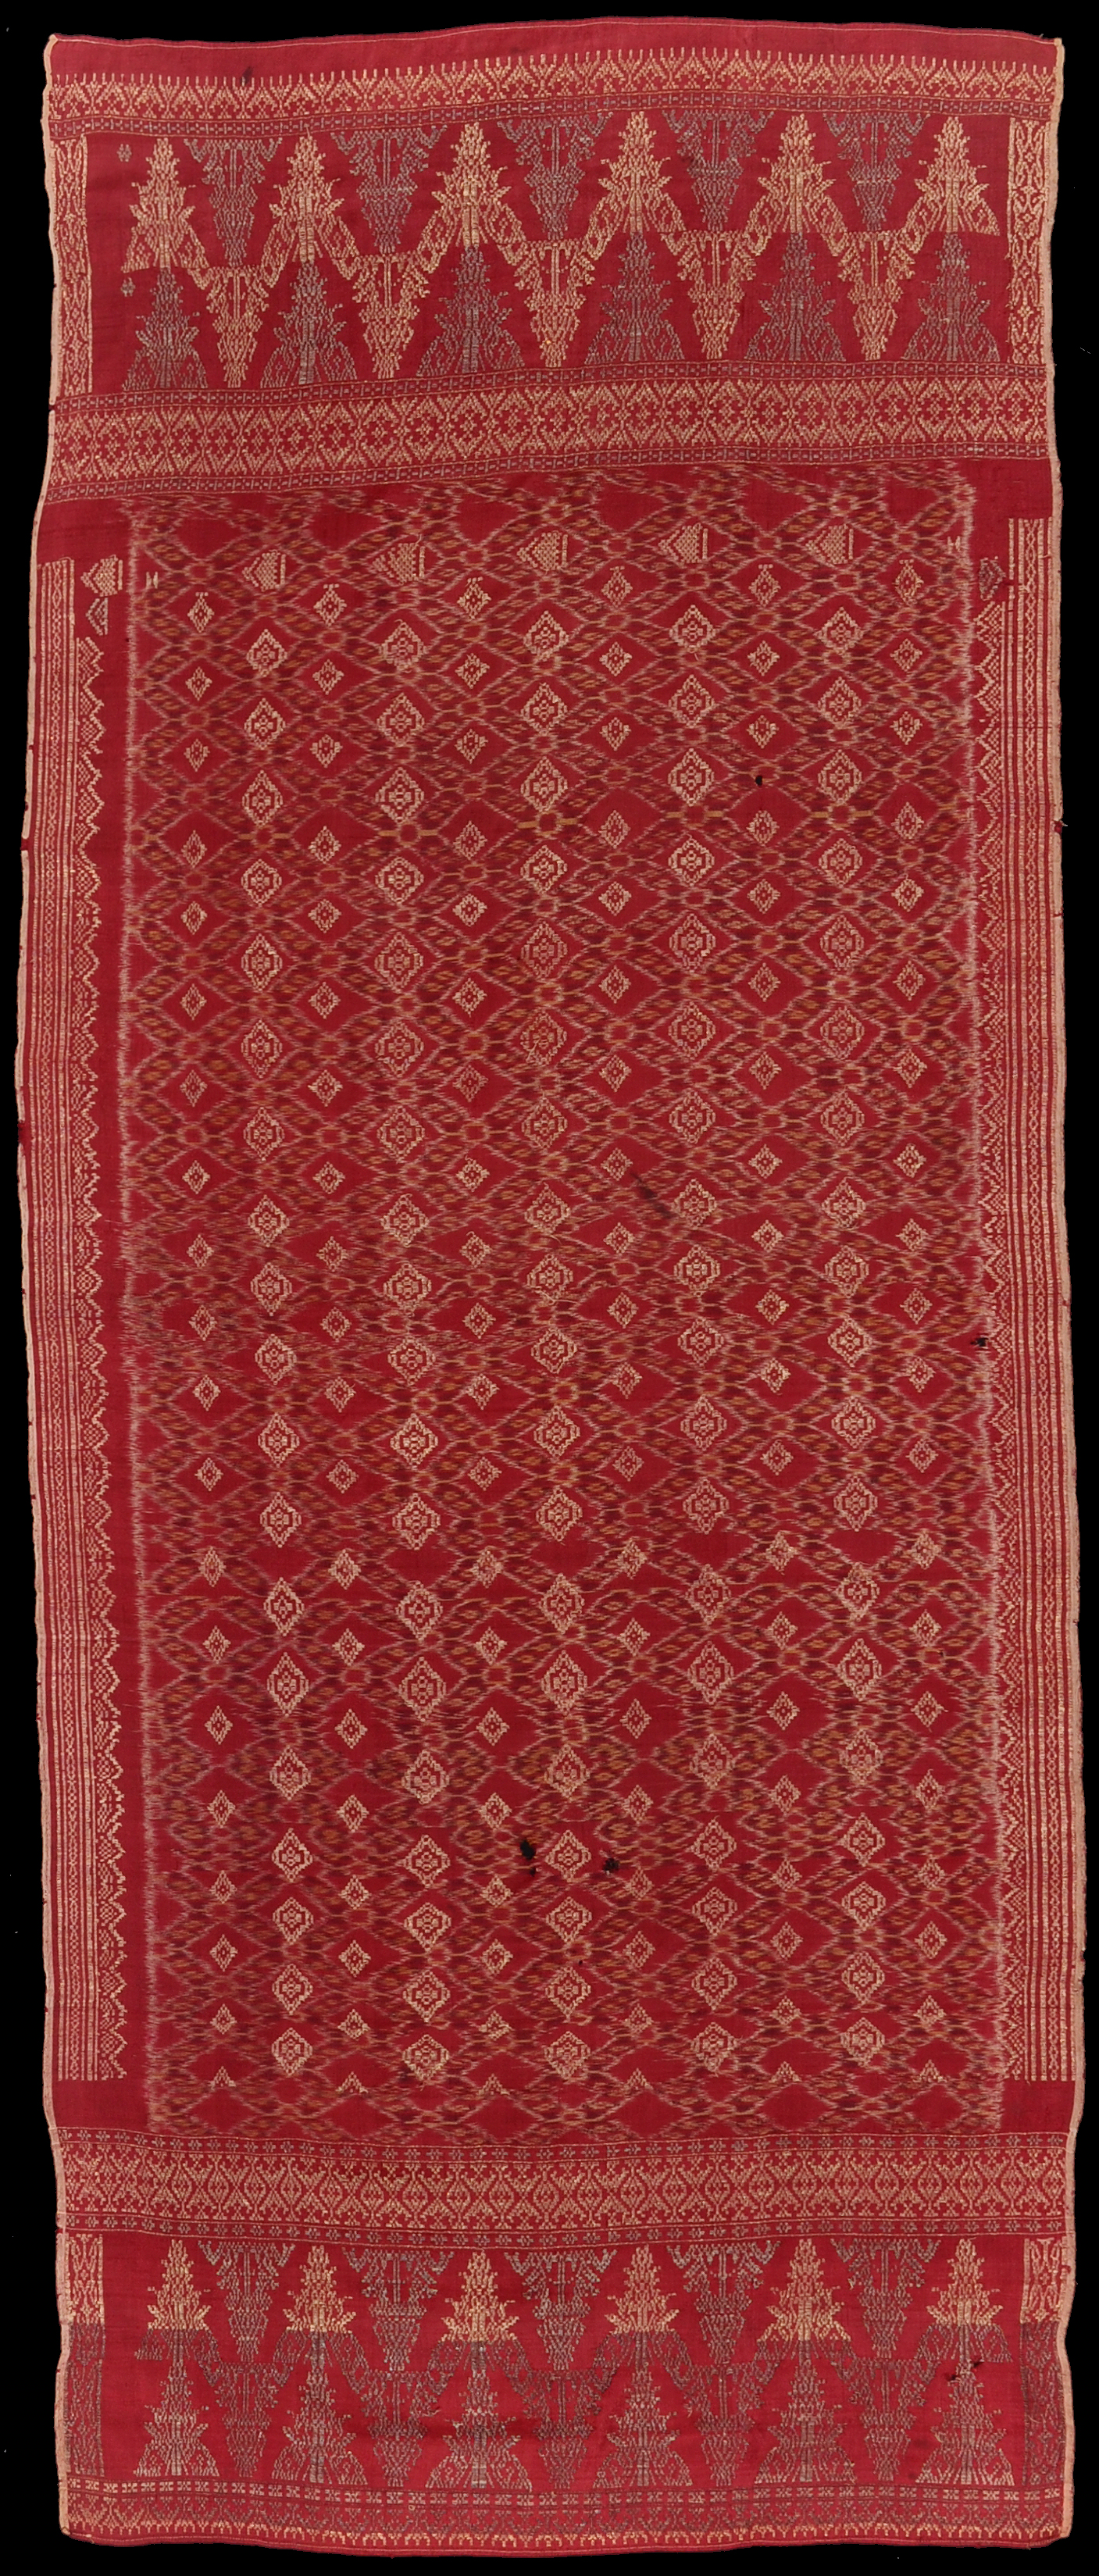 Ikat from Bali, Bali Group, Indonesia